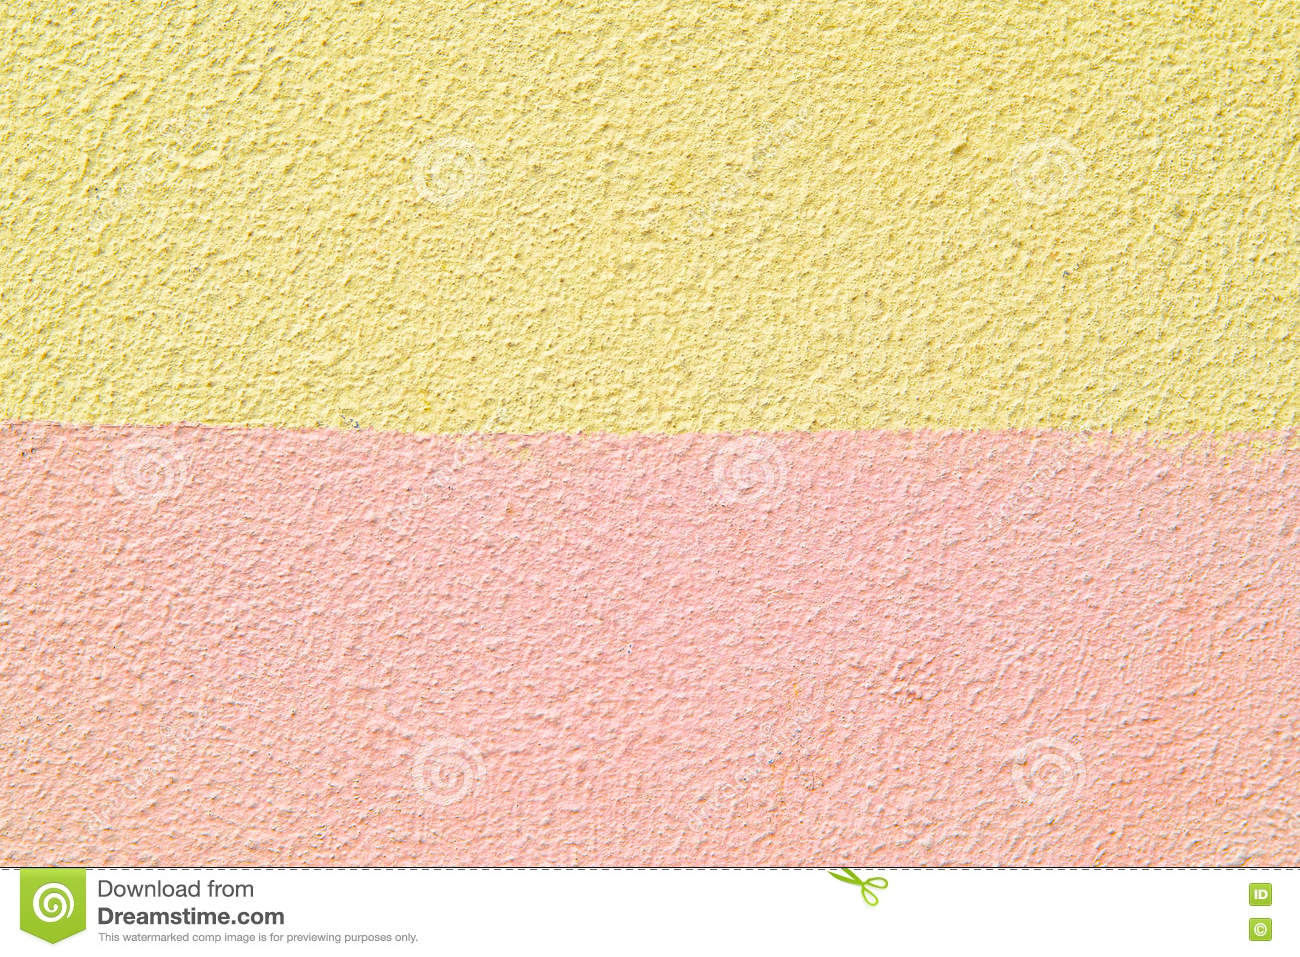 White Plastered Wall Background Texture Stock Image - Image of ...